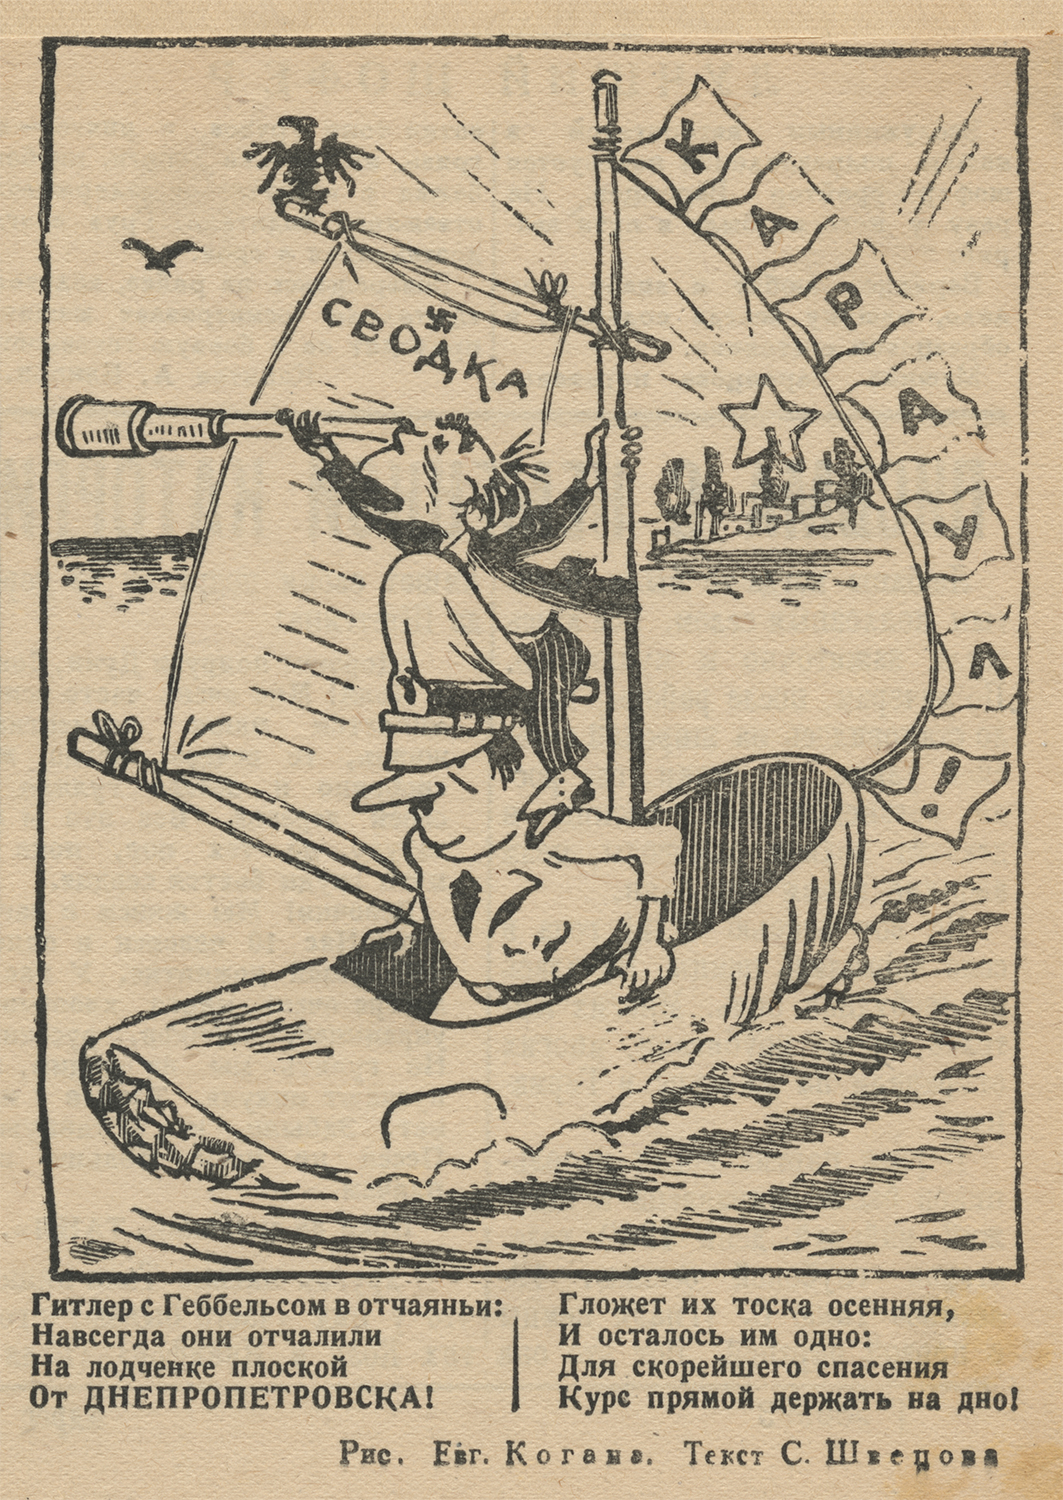 Eugene Kogan illustration of Hitler in a sinking boat. ca. 1941-1945